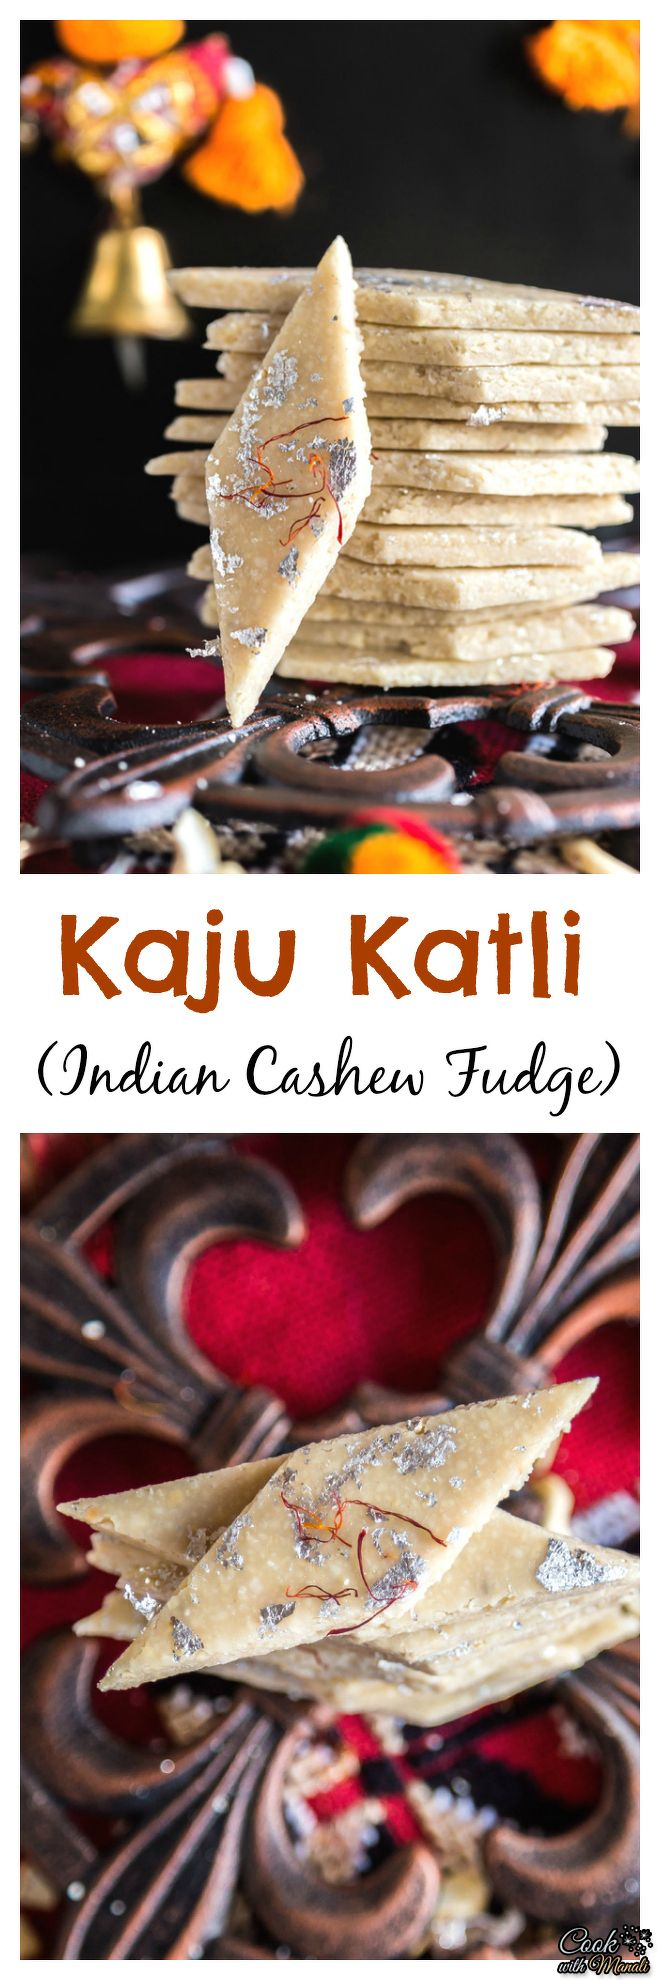 Popular Indian sweet, Kaju Katli is a fudge made out of cashews. The homemade version is so much better than the store